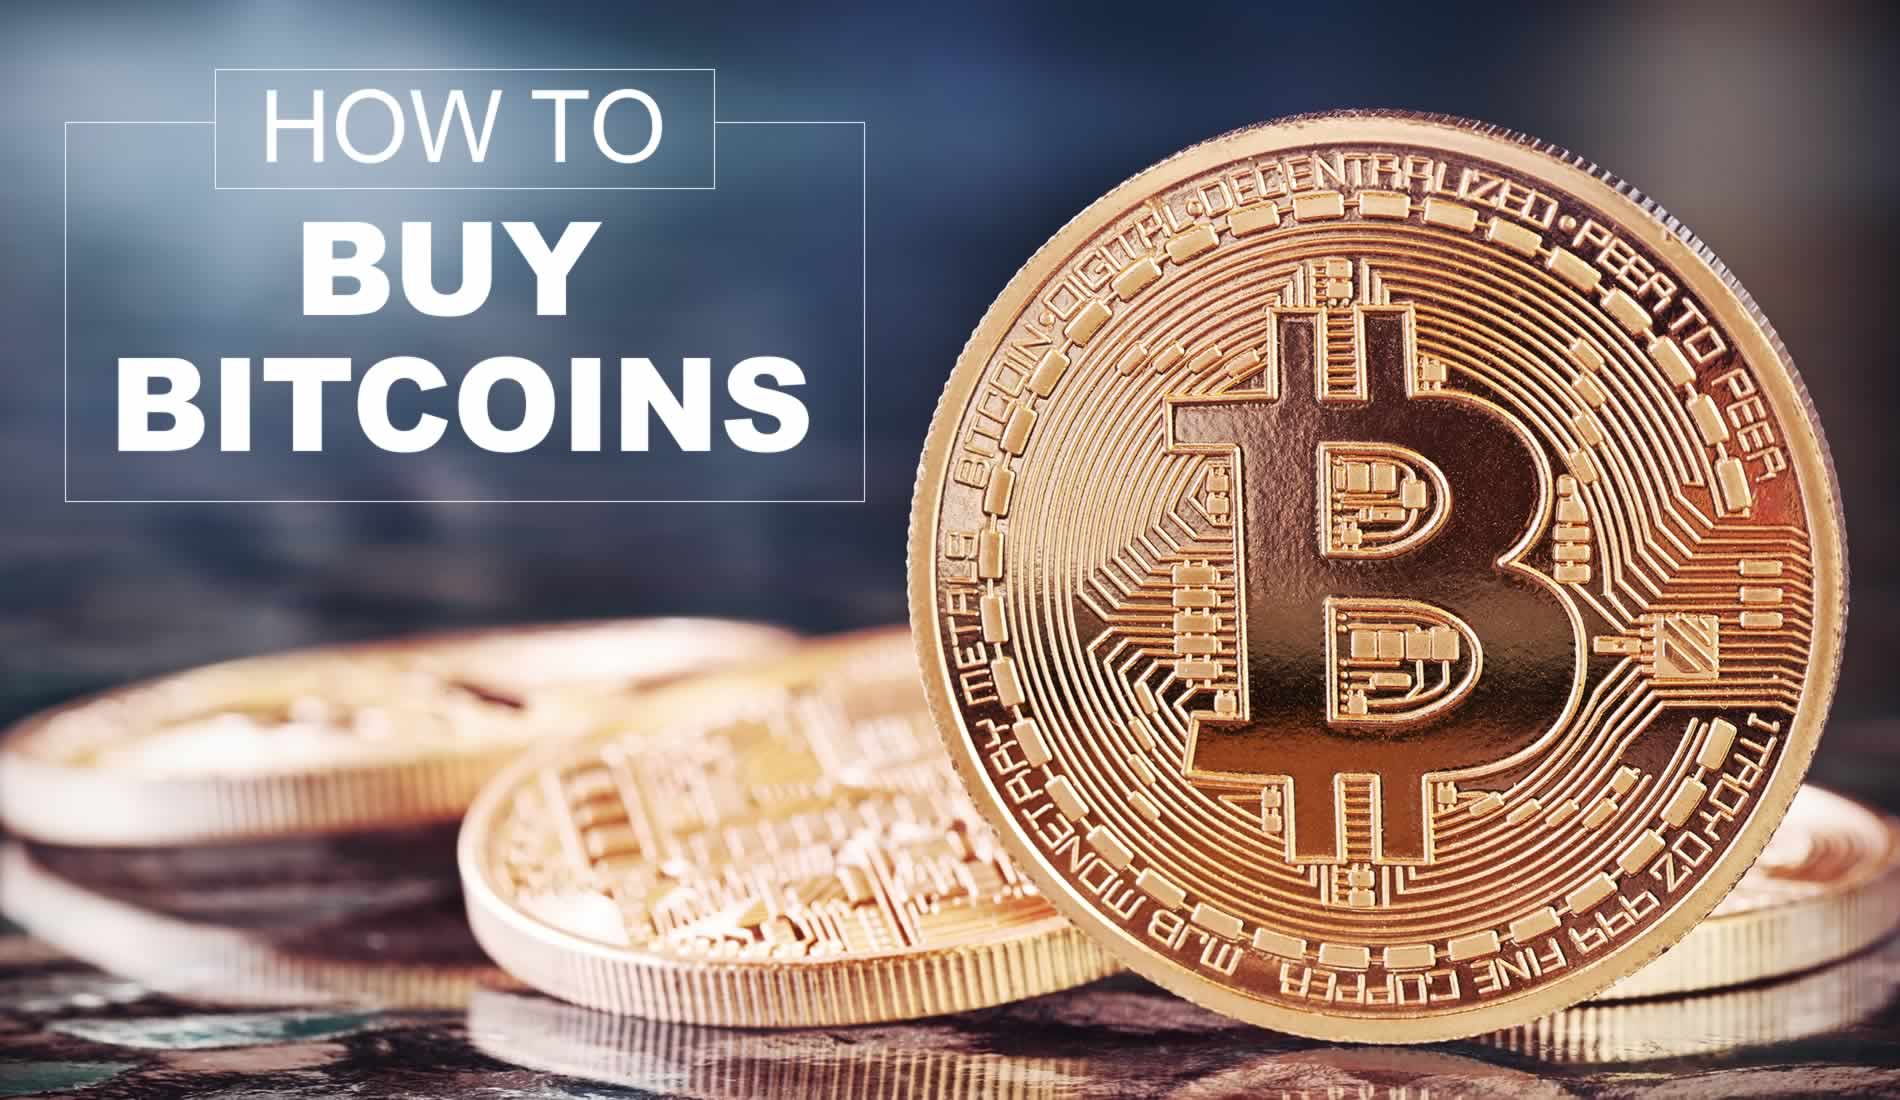 How To Buy Bitcoins Guide